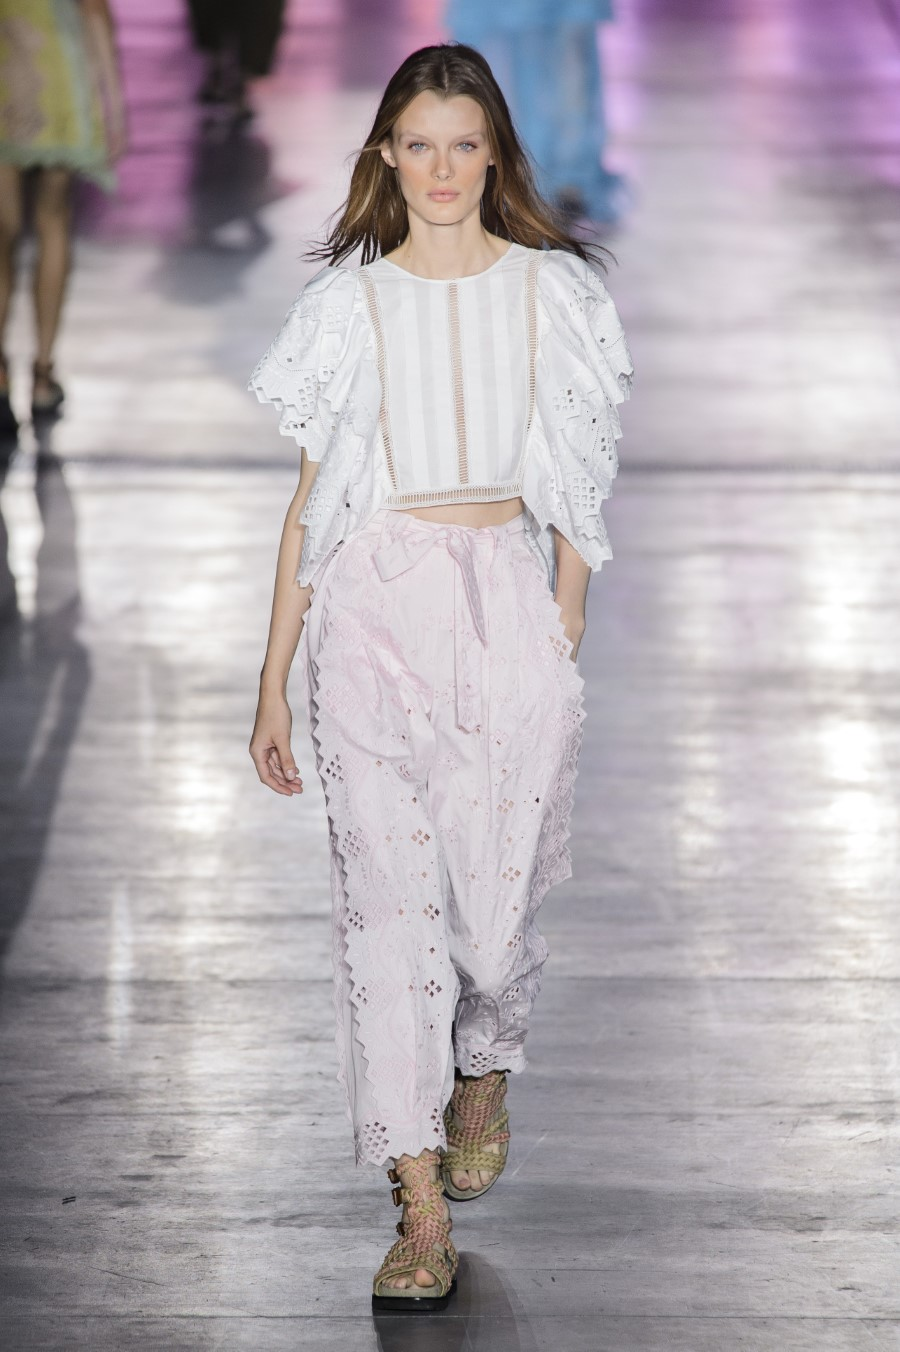 Alberta Ferretti Spring Summer 2019 – Milan Fashion Week